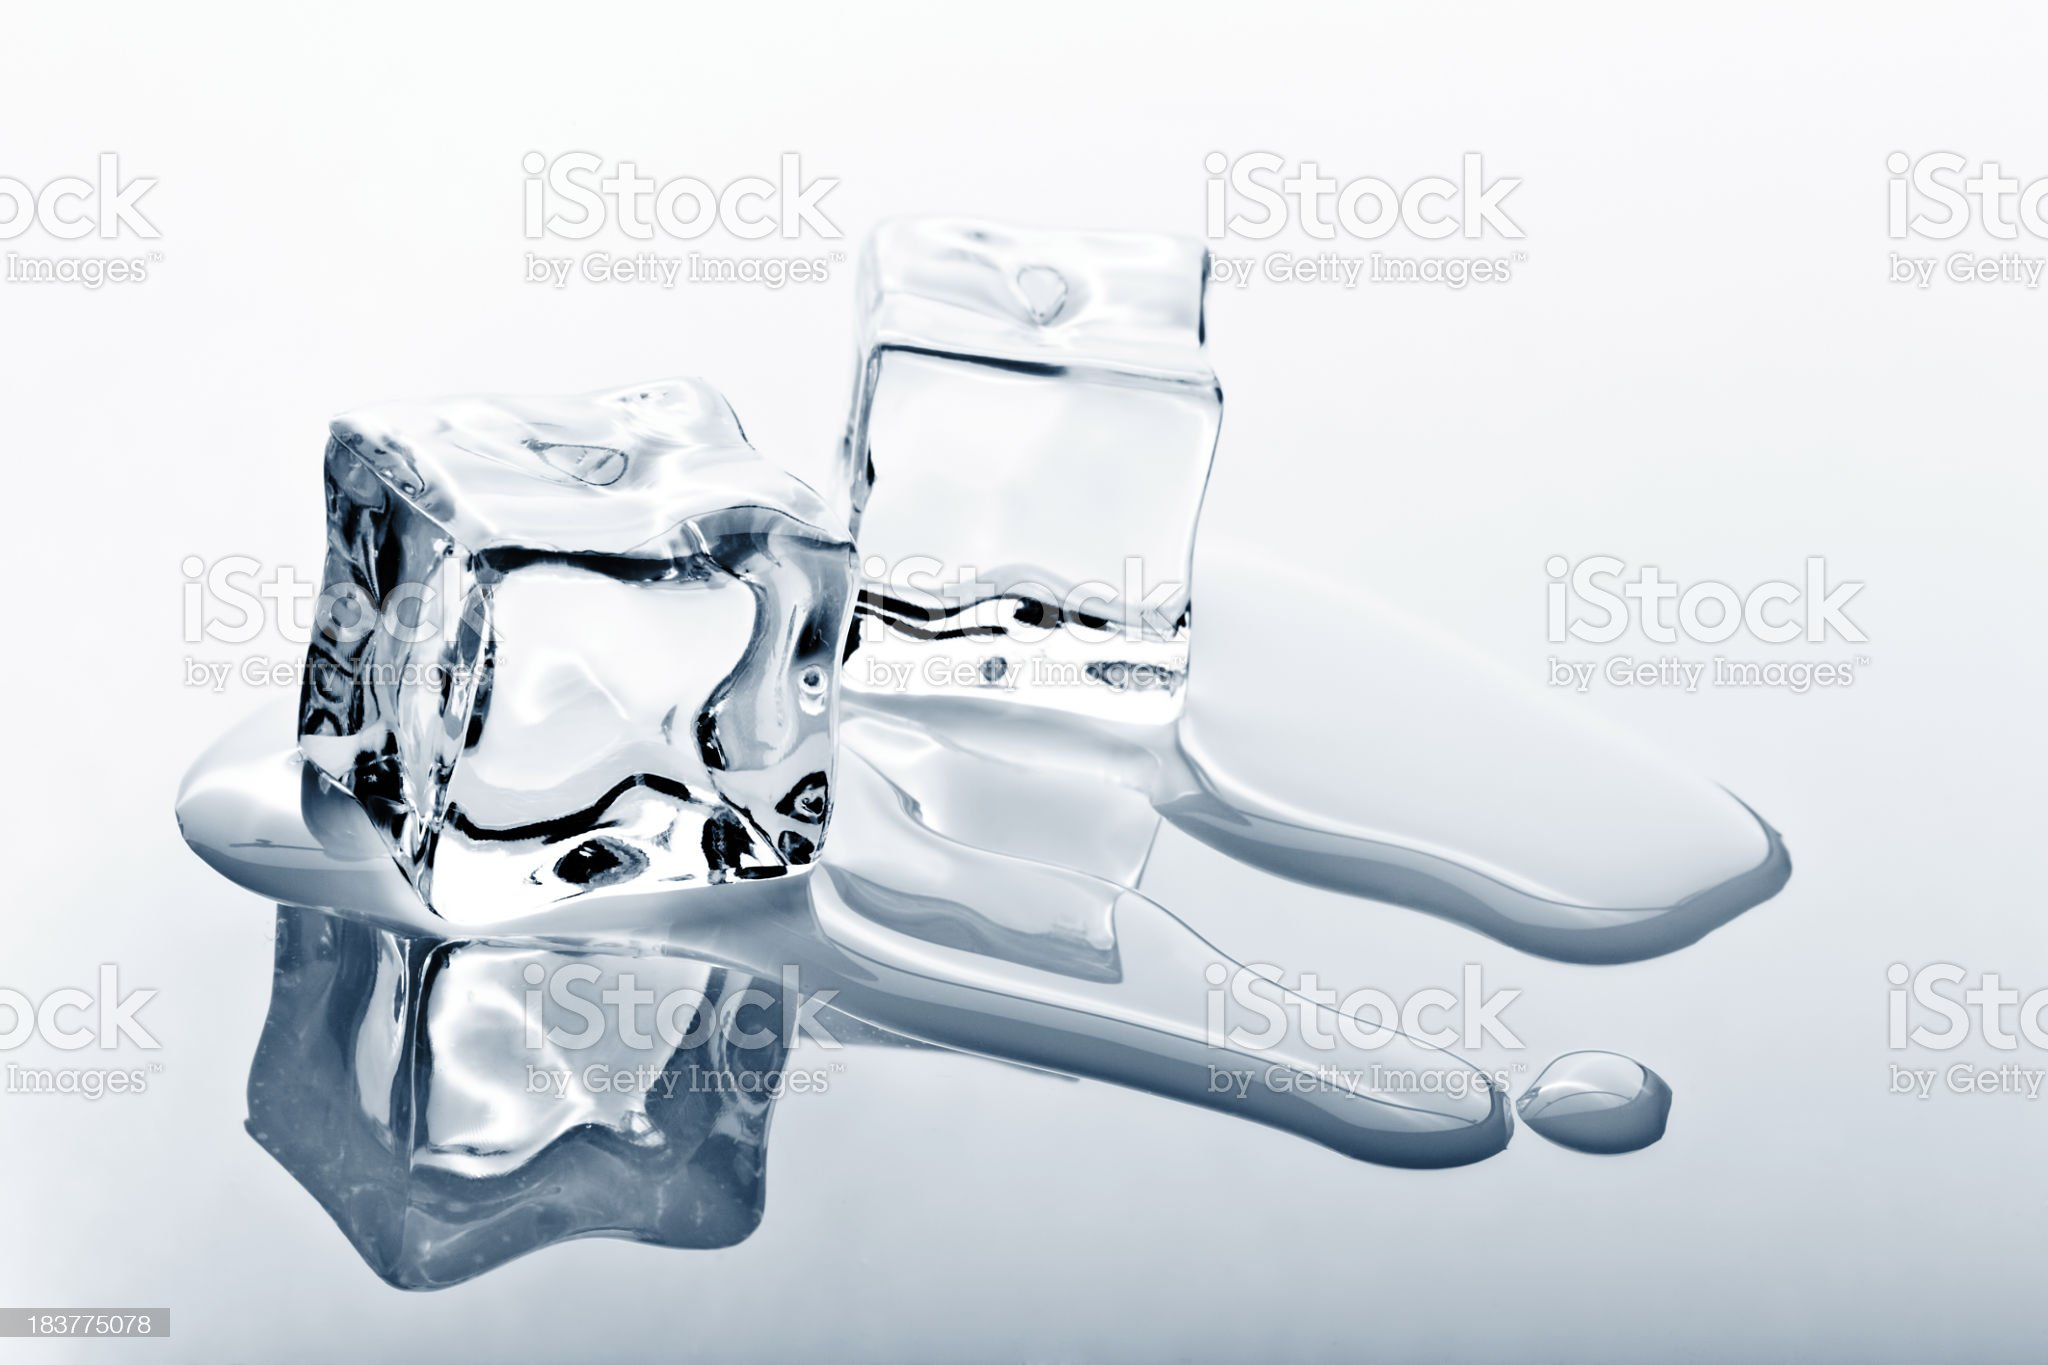 Two ice cubes melting on reflected surface royalty-free stock photo